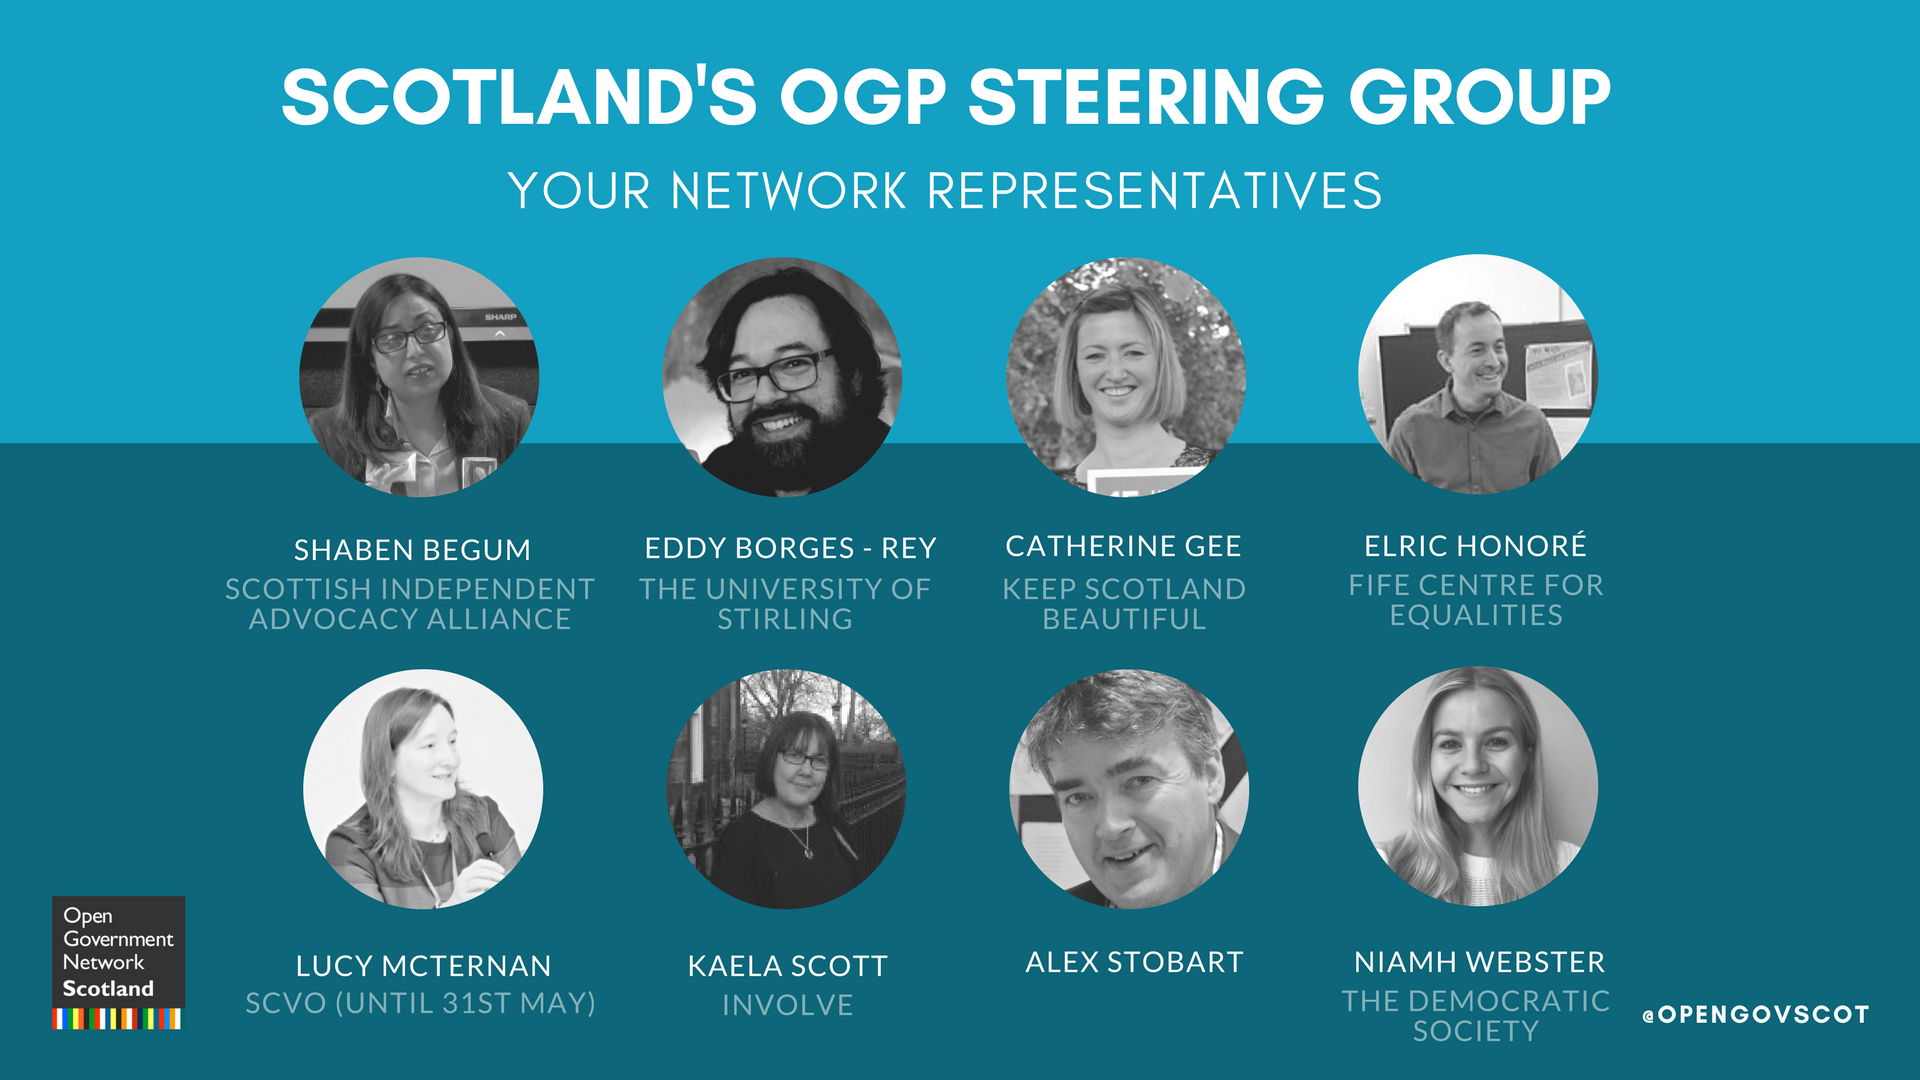 OGP Steering Group